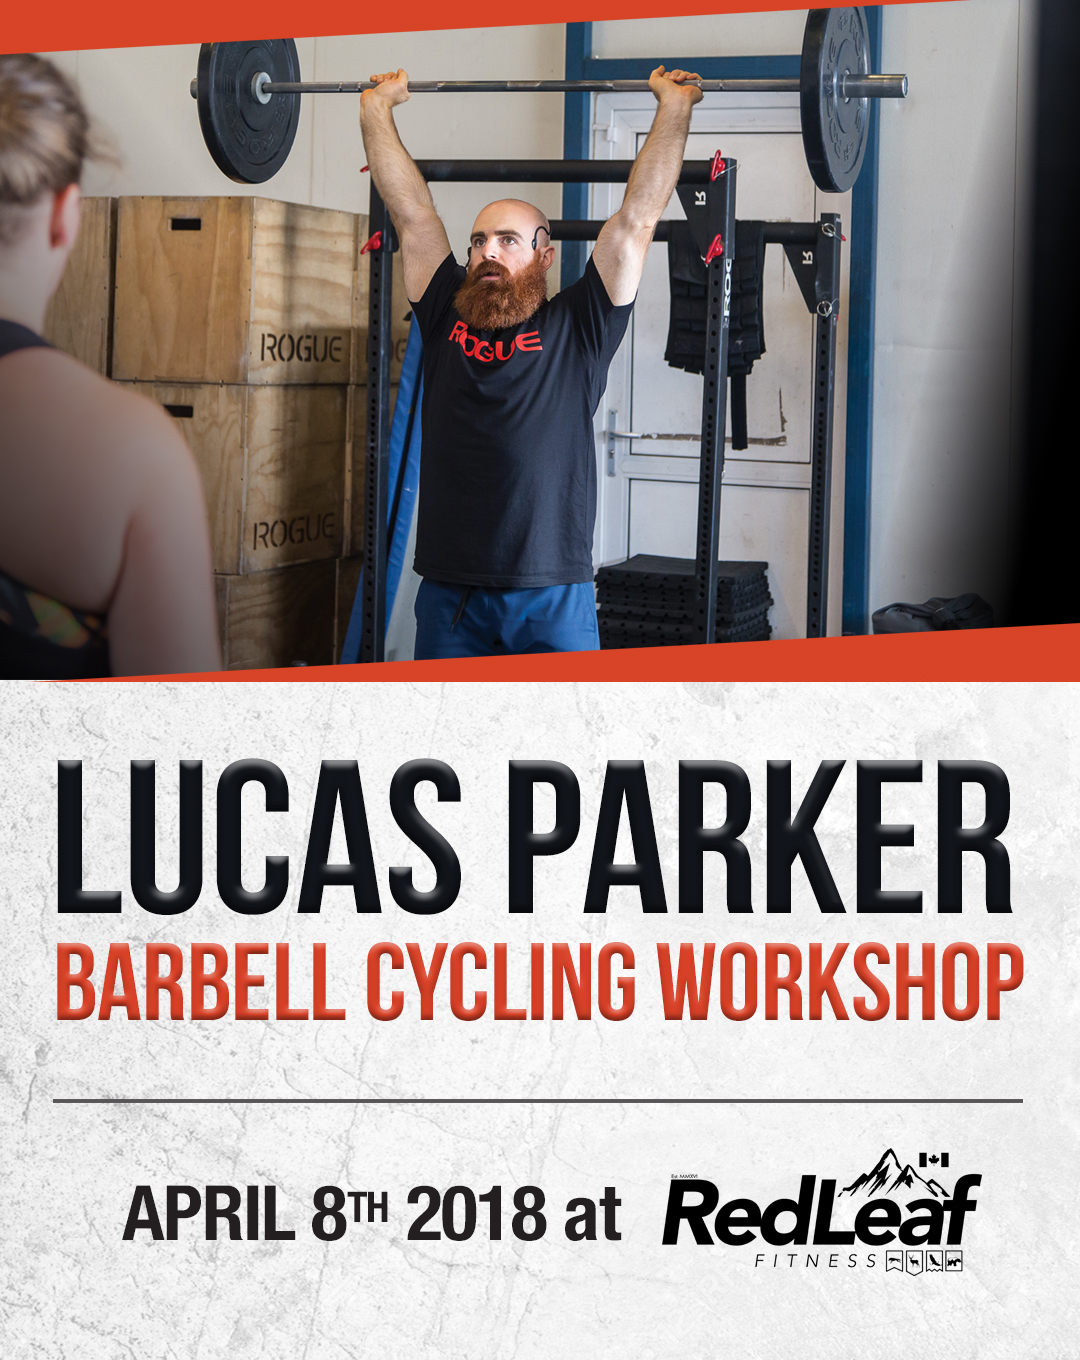 Lucas Parker Barbell Cycling Workshop - Red Leaf